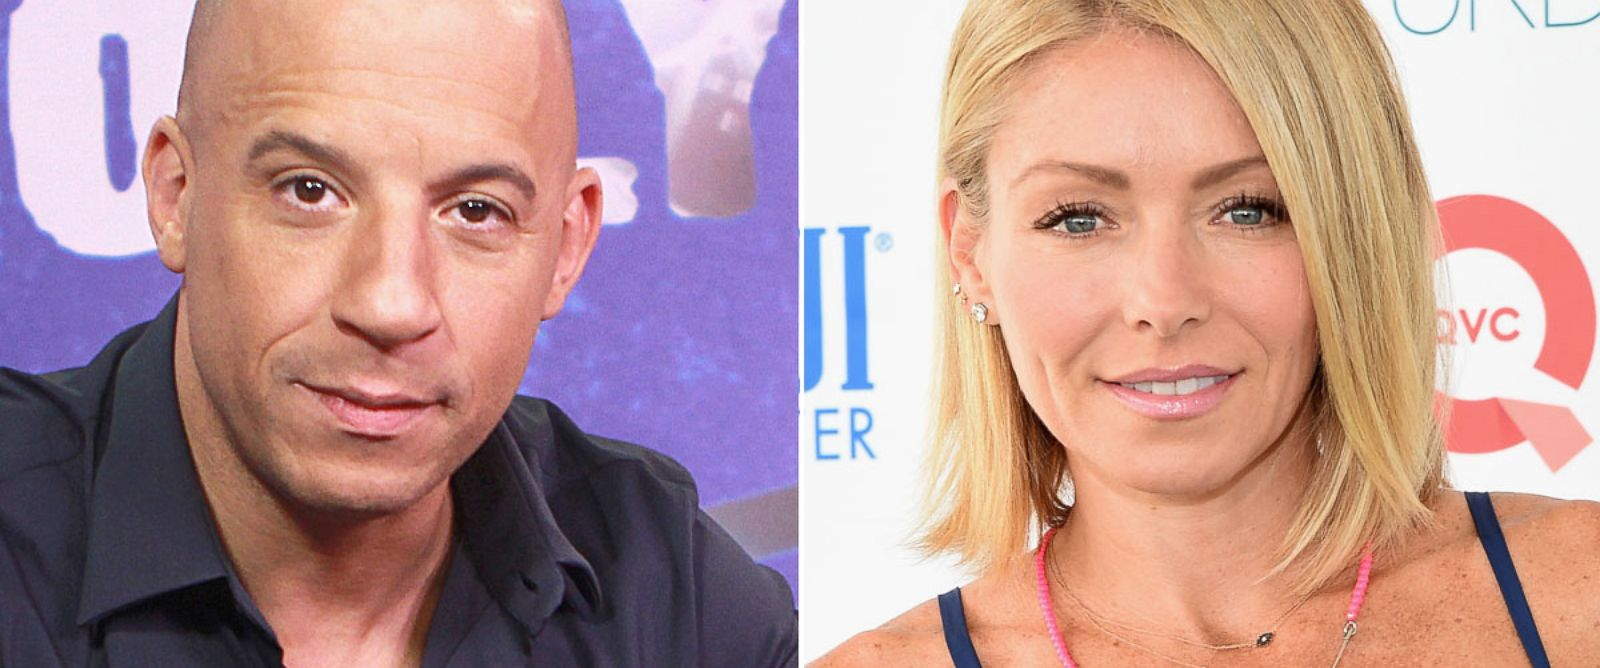 PHOTO: From left, Vin Diesel in Los Angeles, and Kelly Ripa in New York